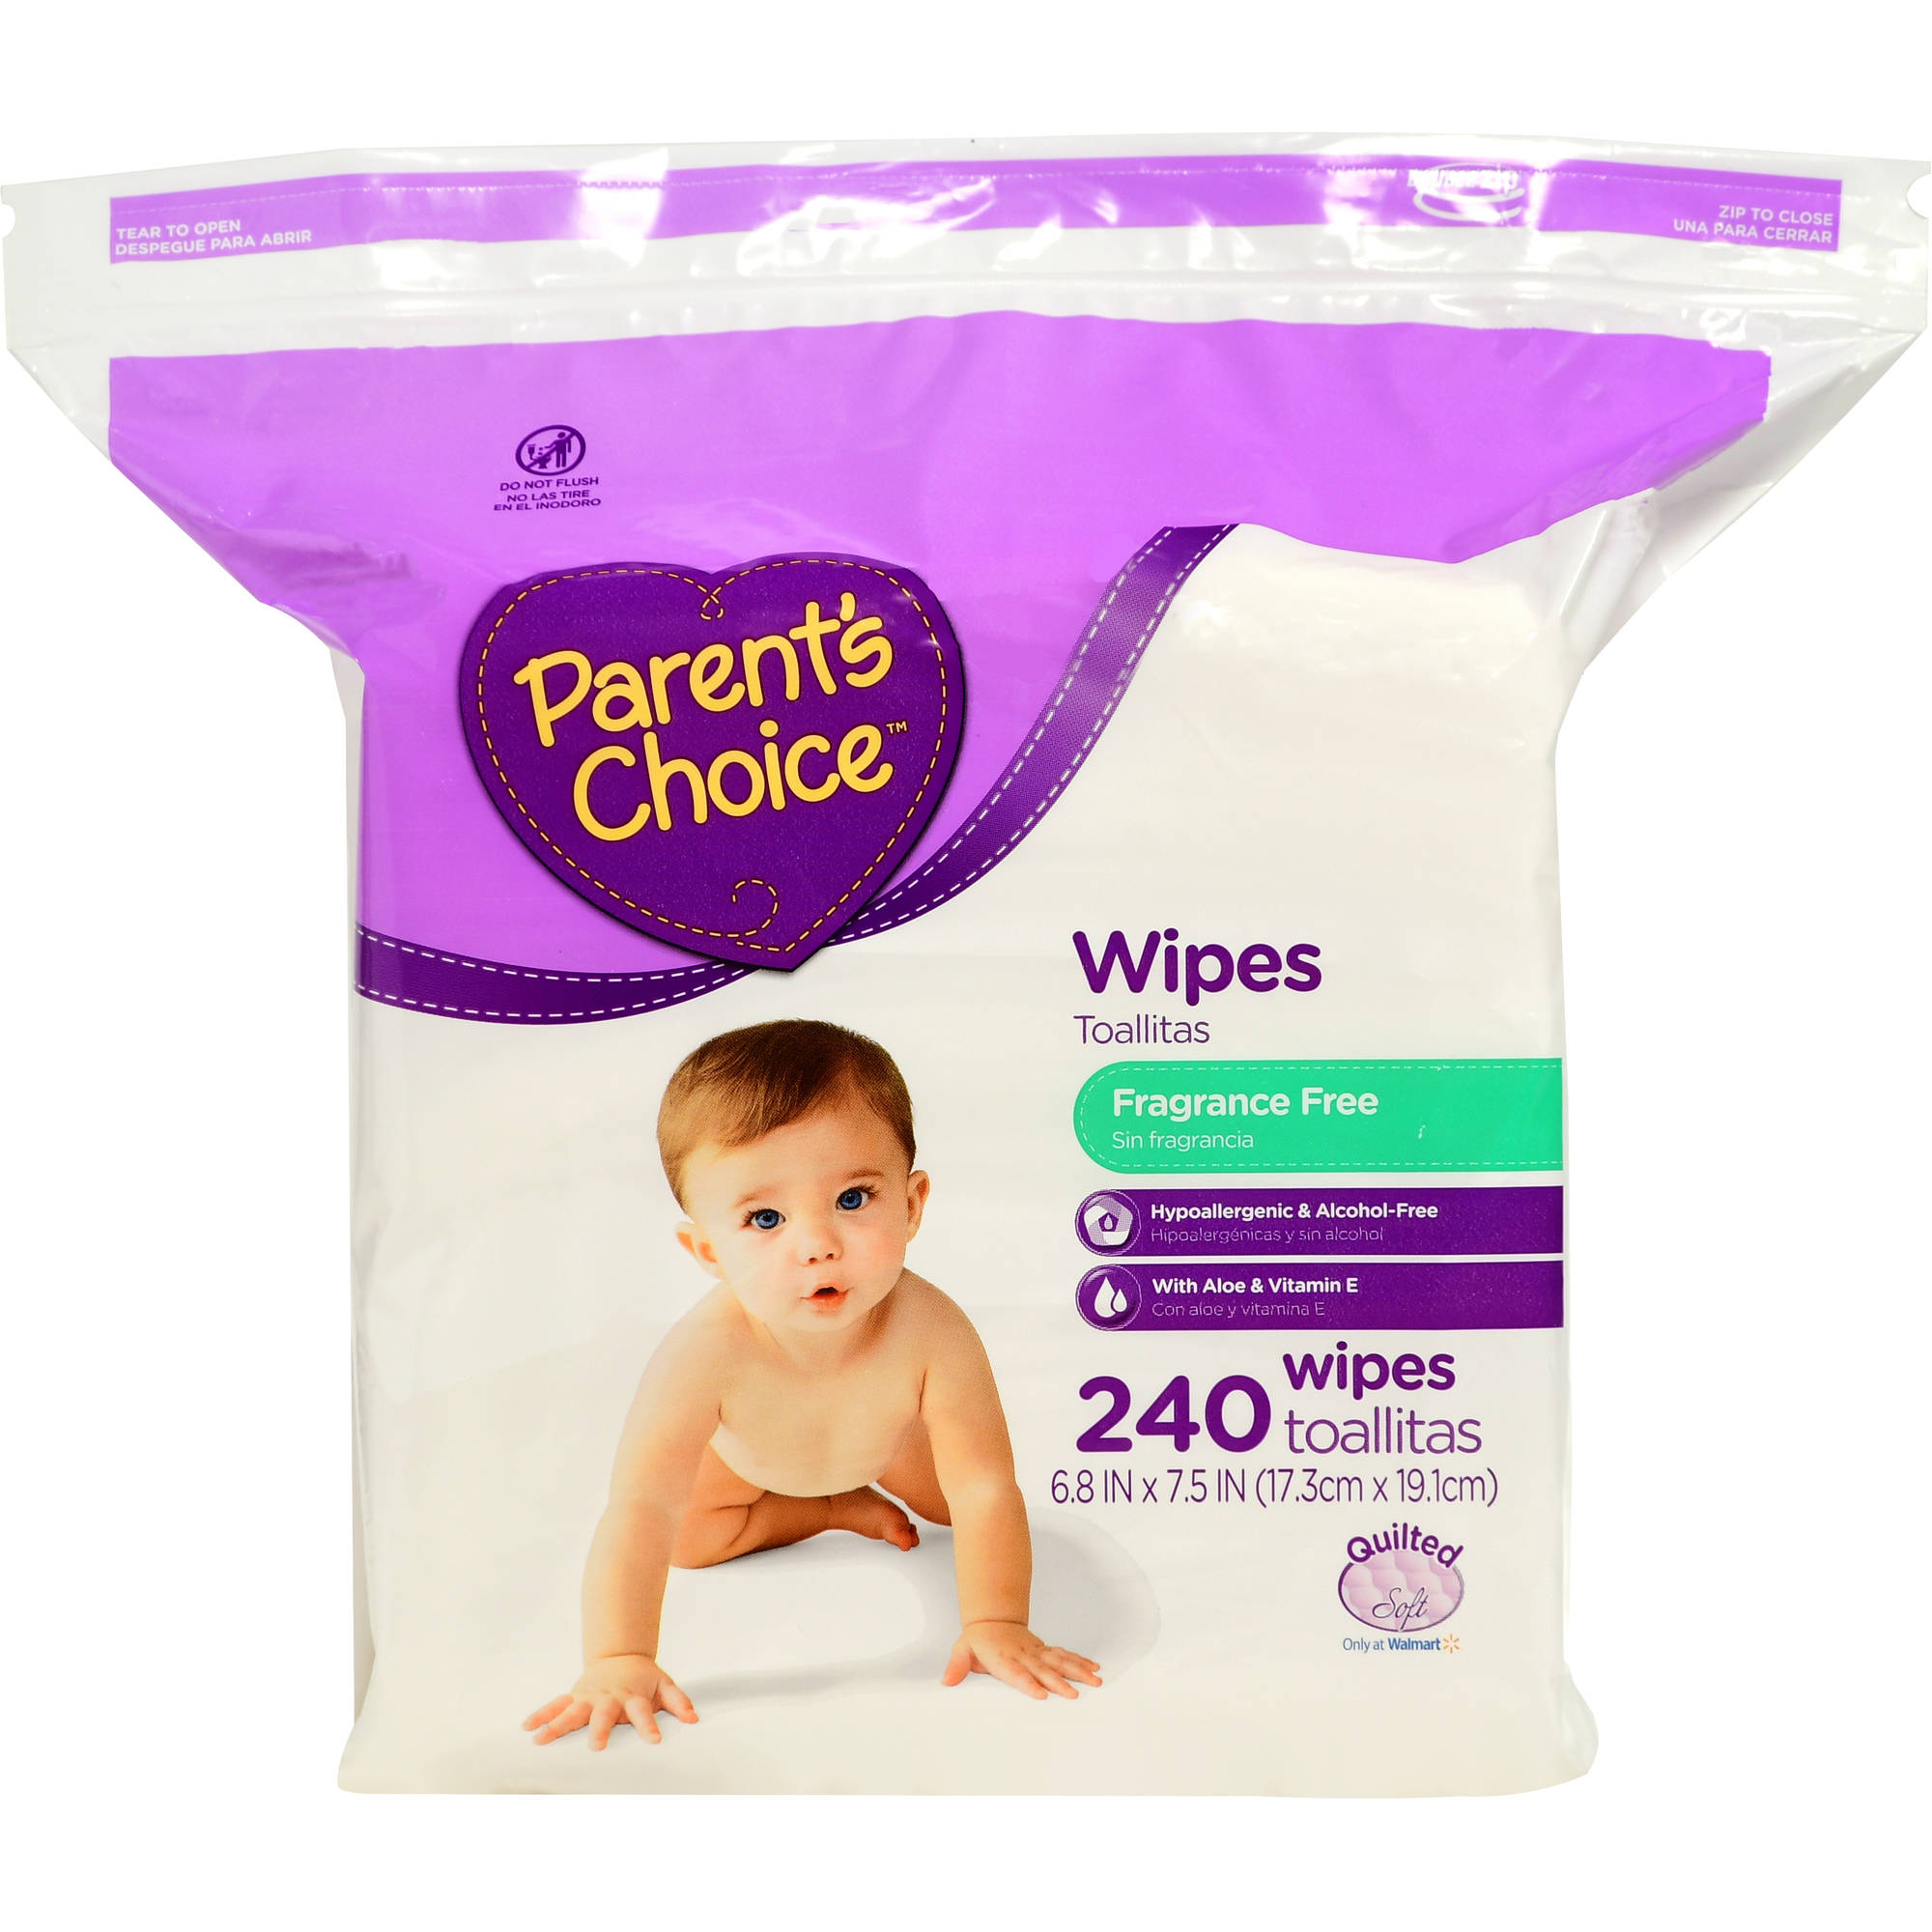 Parent's Choice Fragrance Free Baby Wipes, 240 sheets, Resealable Zipper Bag Refill